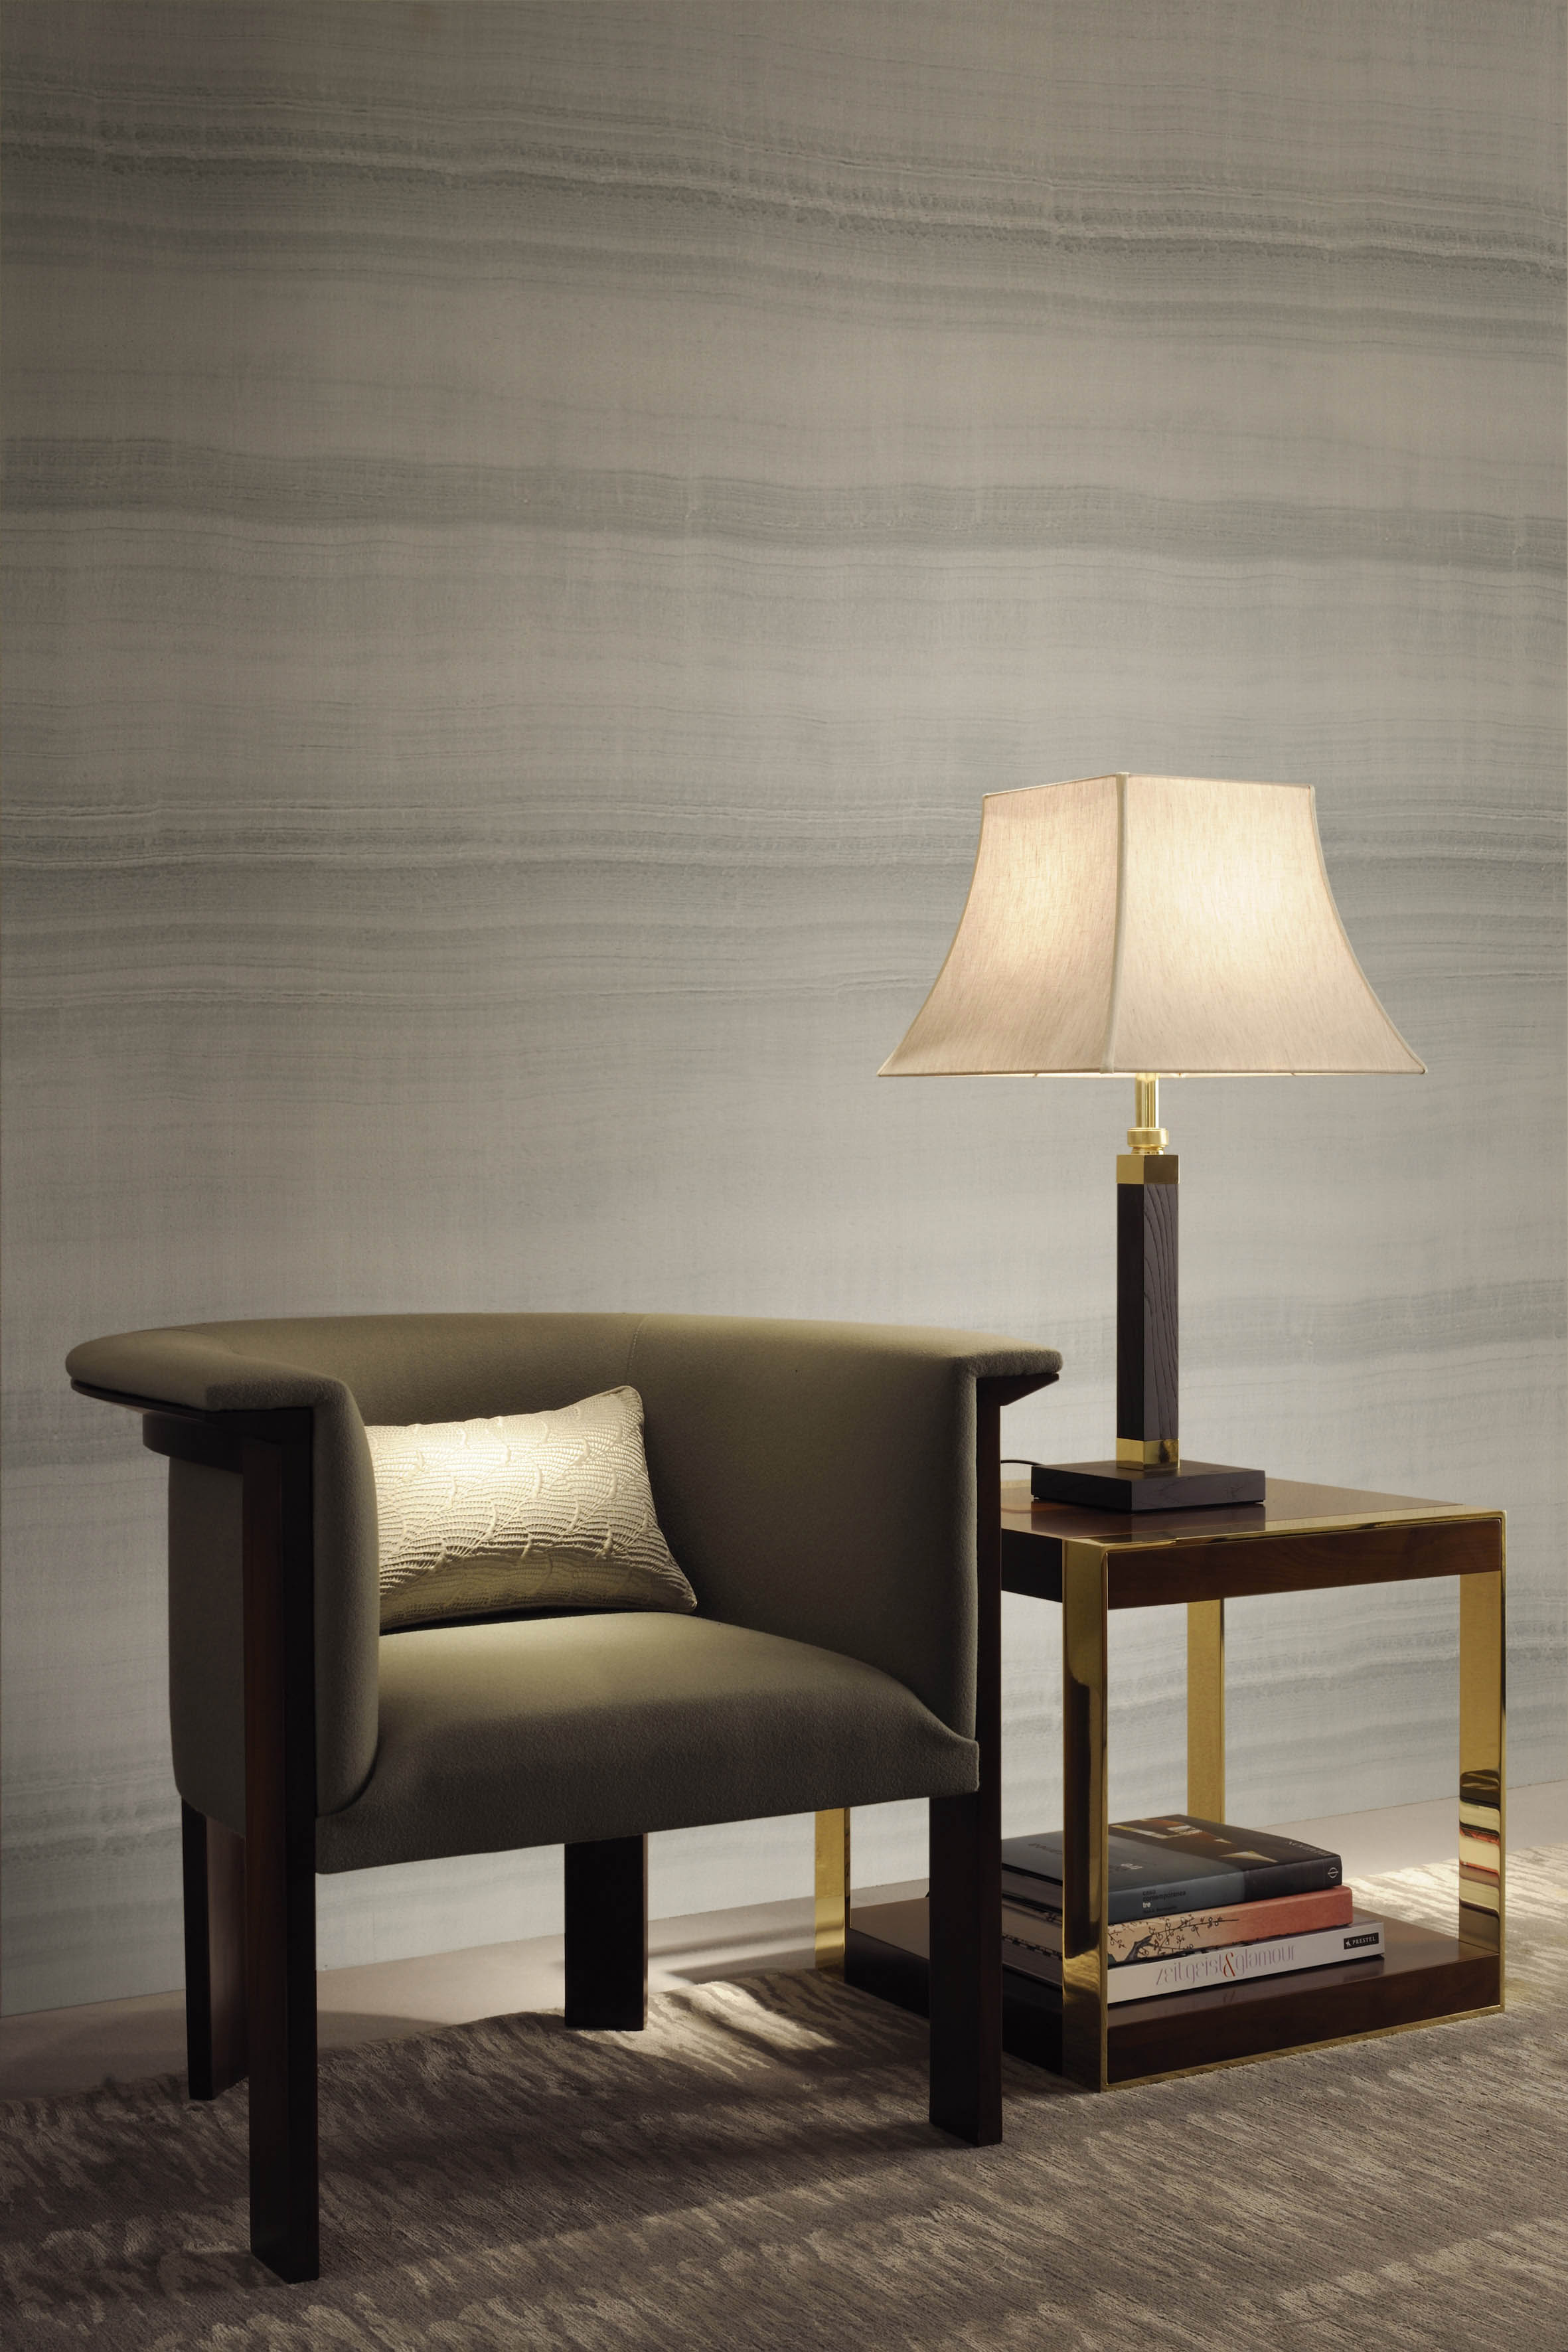 ARMANI CASA introduces new Wallpaper collection and 2014 items 2362x3543